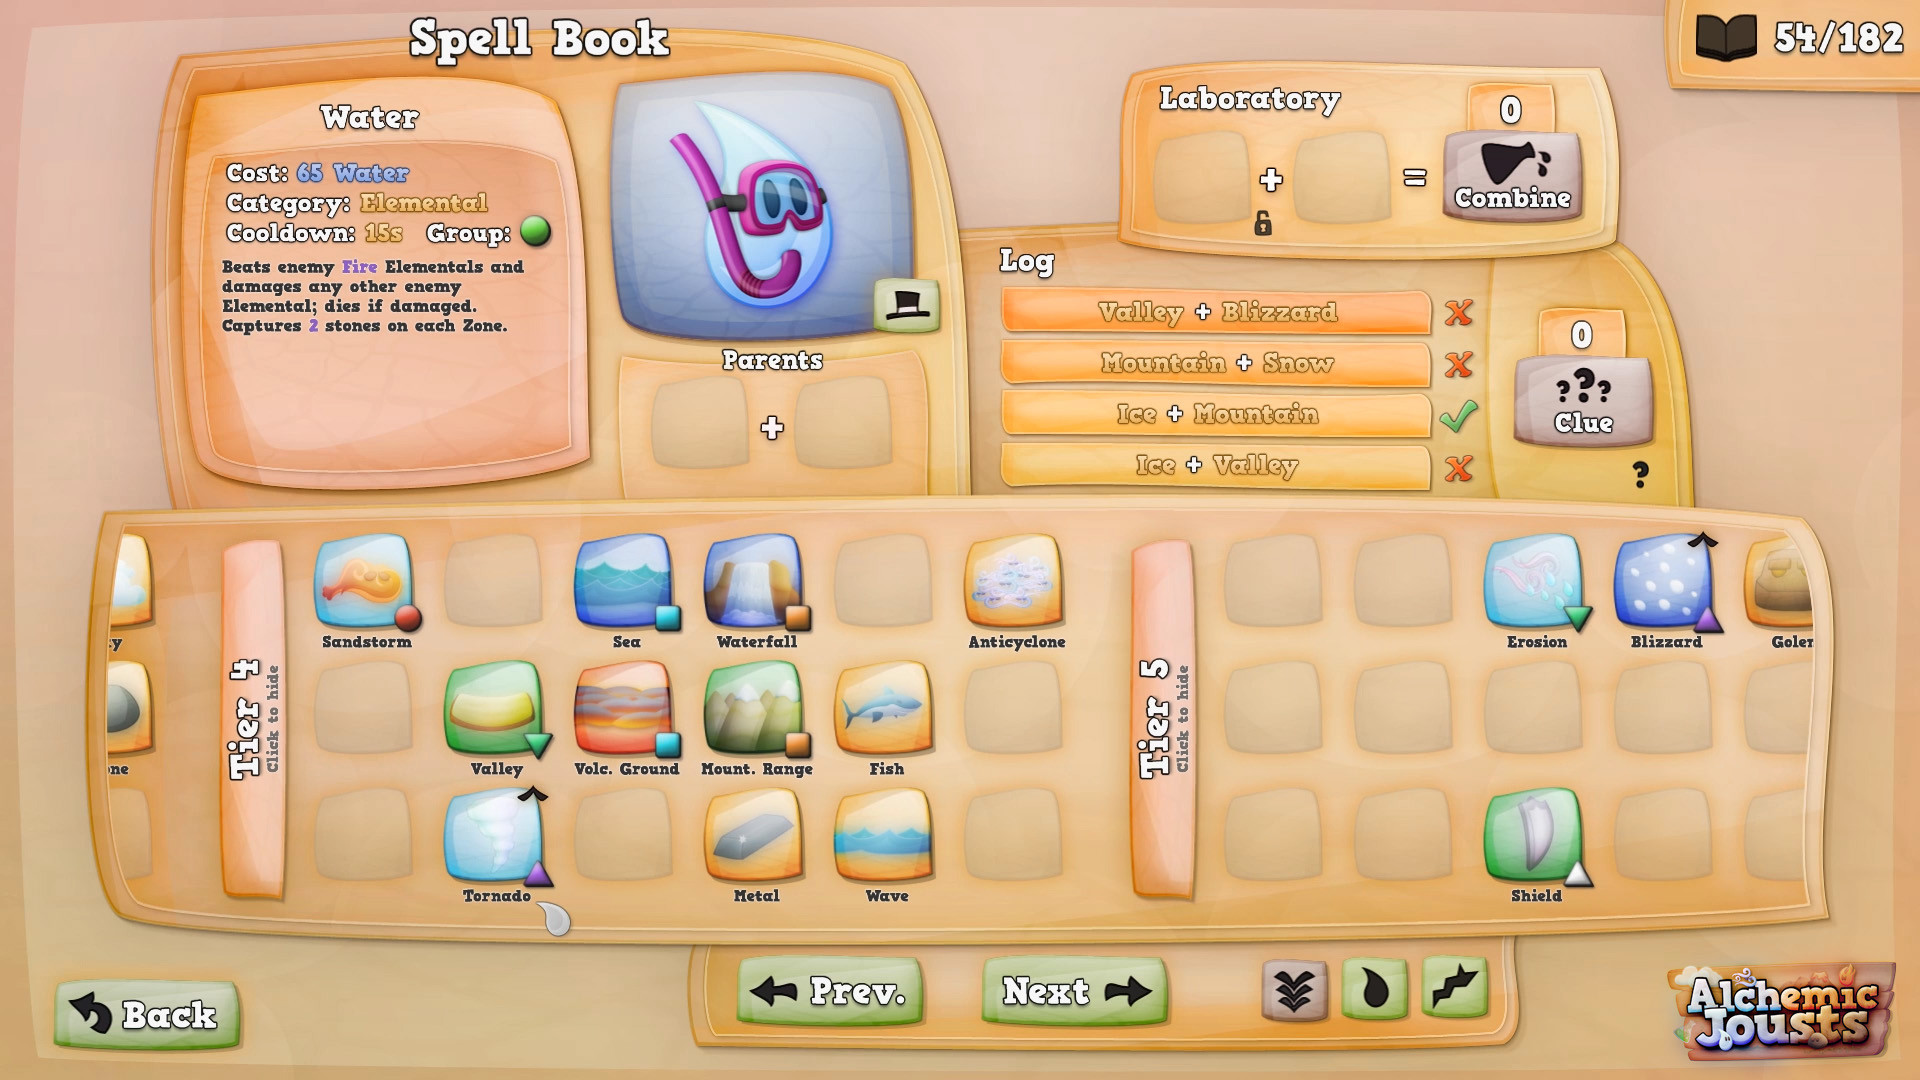 Alchemic Jousts Screenshot 4